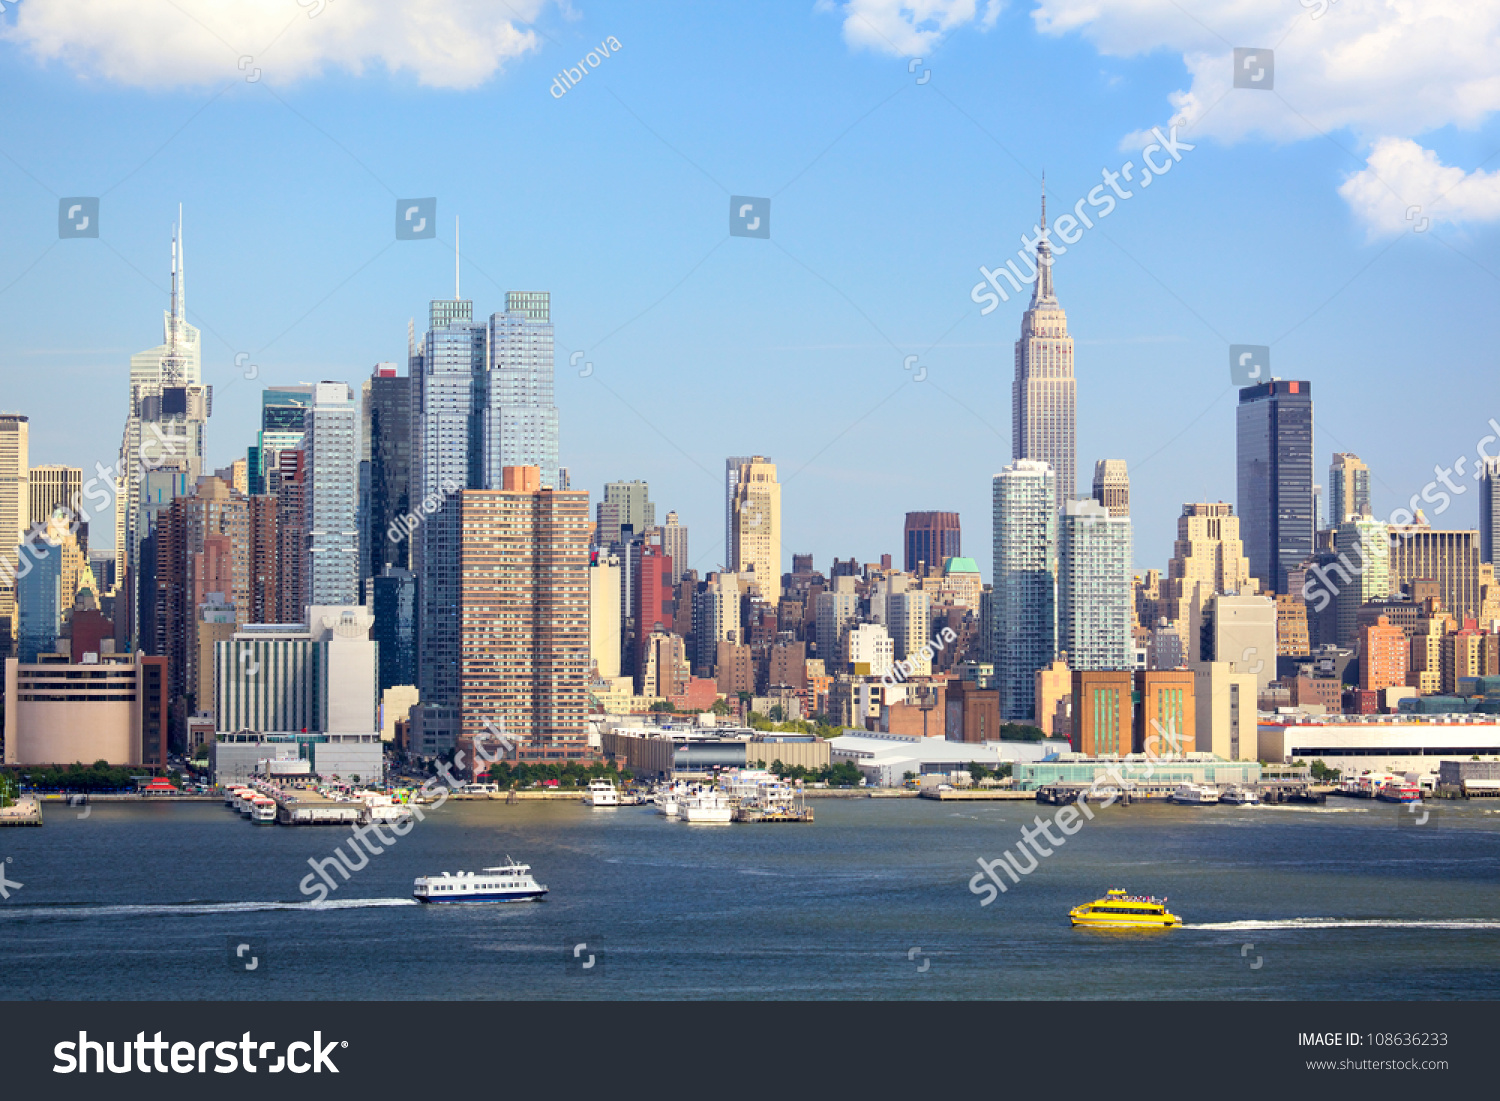 manhattan skyline empire state building over stock photo. Black Bedroom Furniture Sets. Home Design Ideas